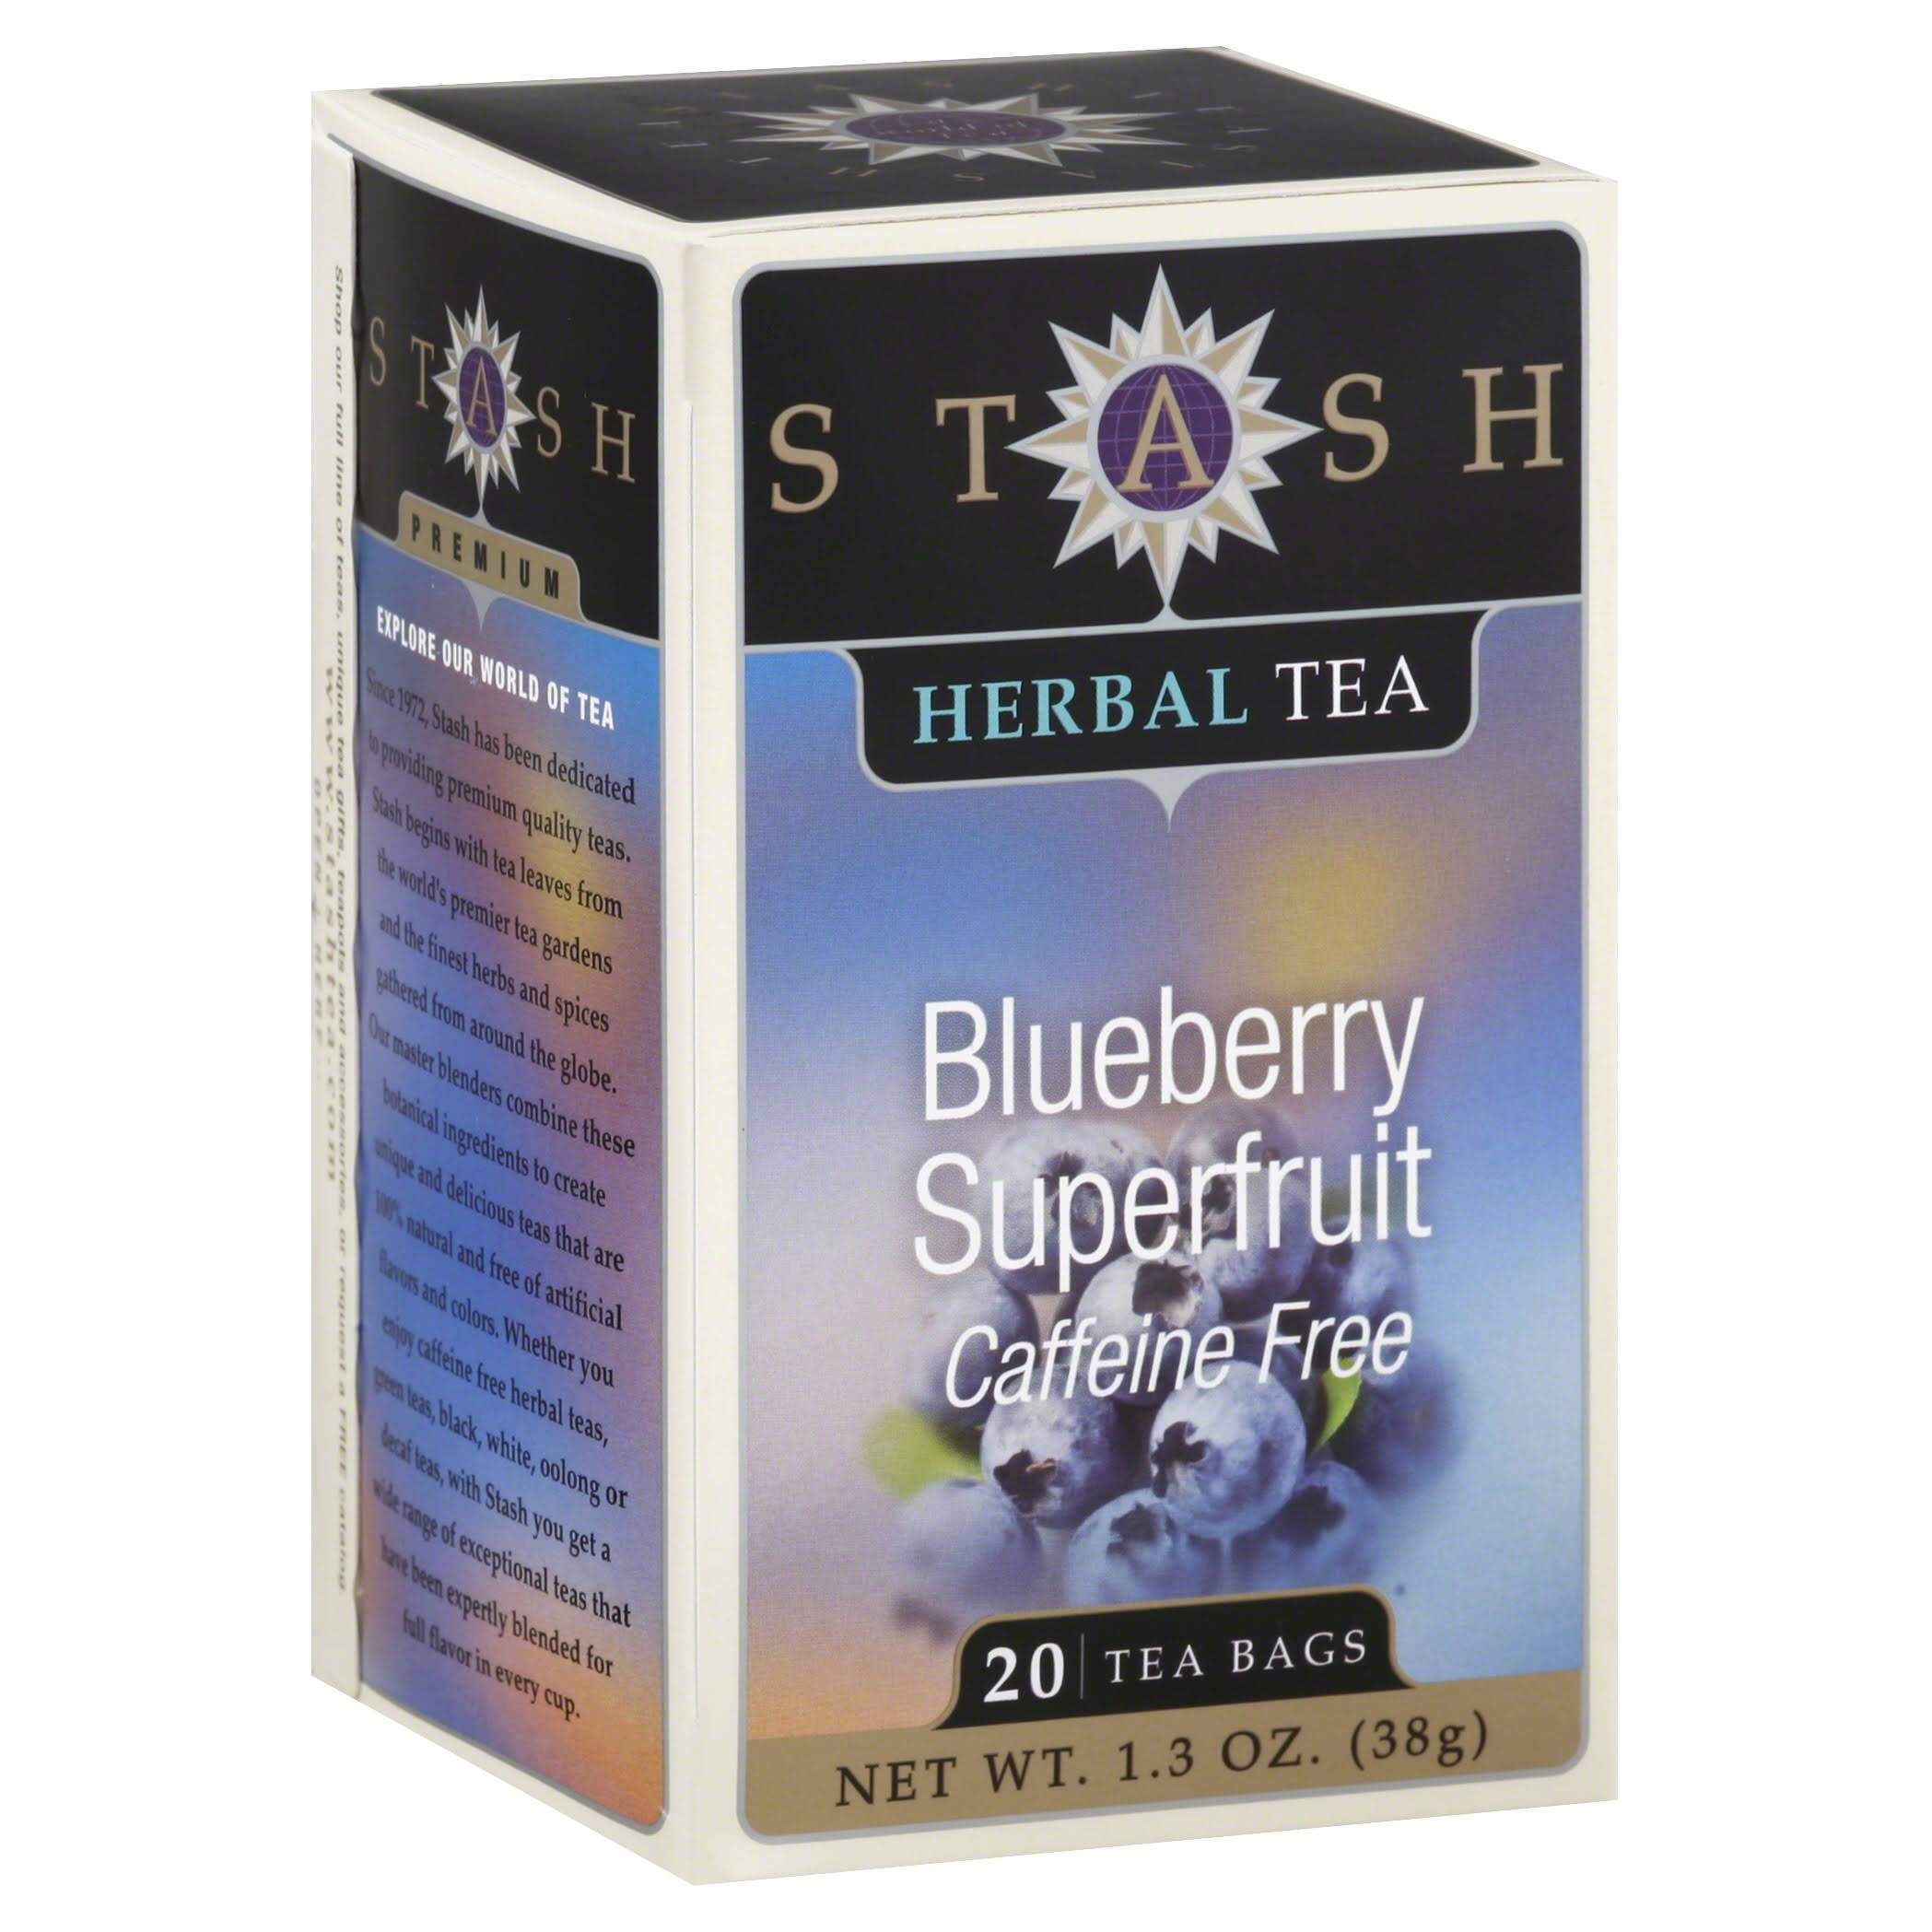 Stash Herbal Blueberry Superfruit Tea Bags - 20ct, 38g